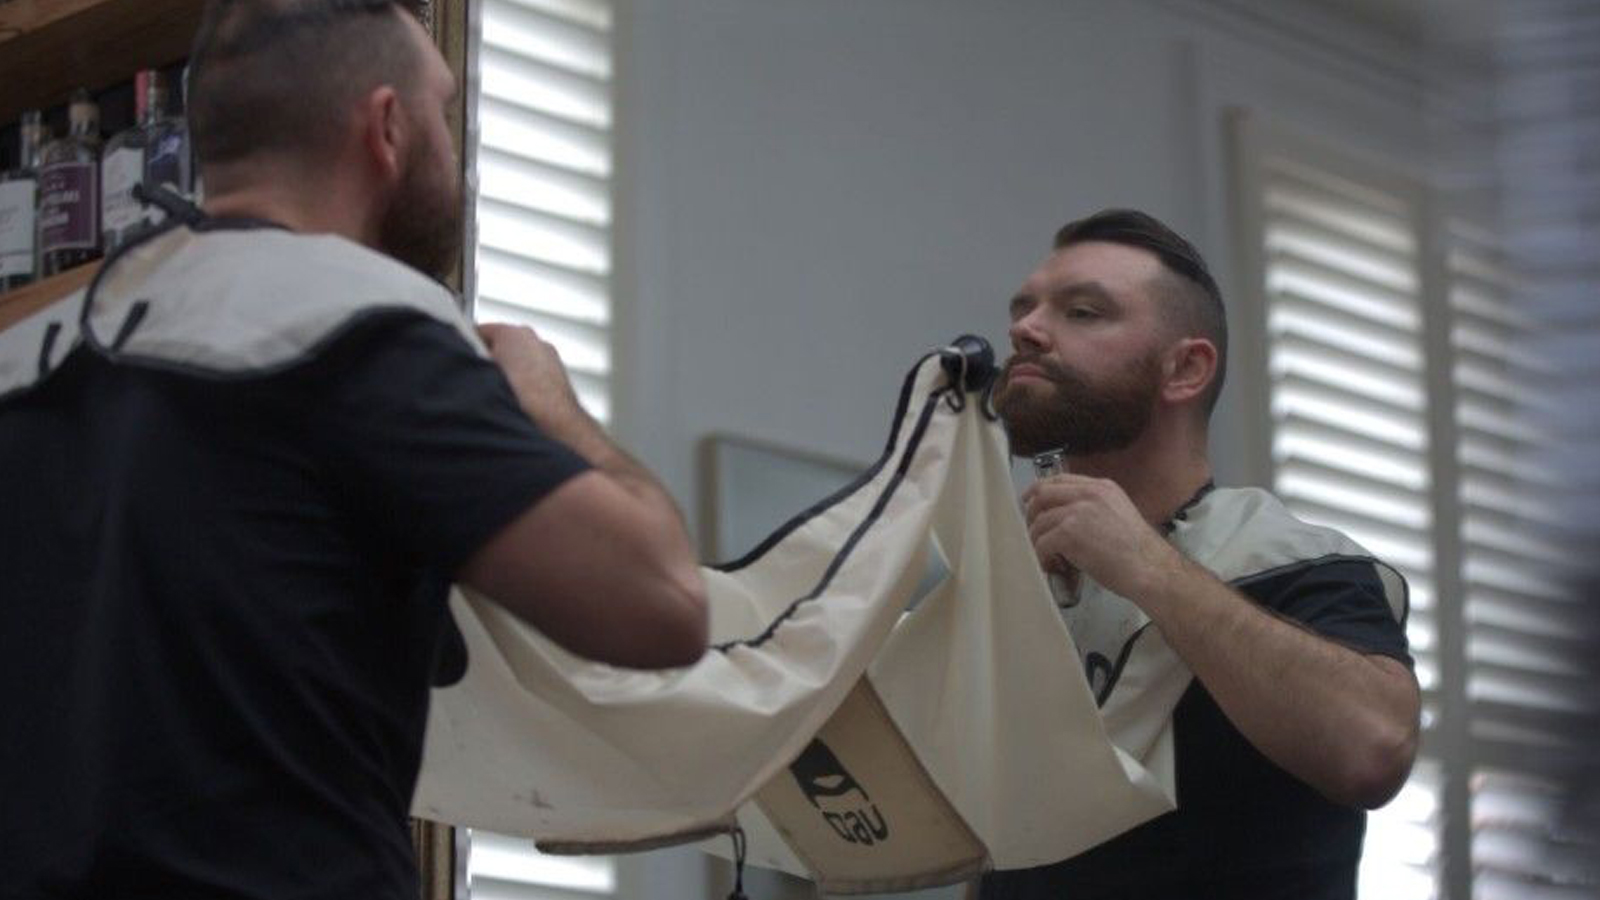 """The """"Clippings Catcher""""catches beard trimmings before they go down the drain causing a blockage. Photo credit:    The Shaver Shop"""